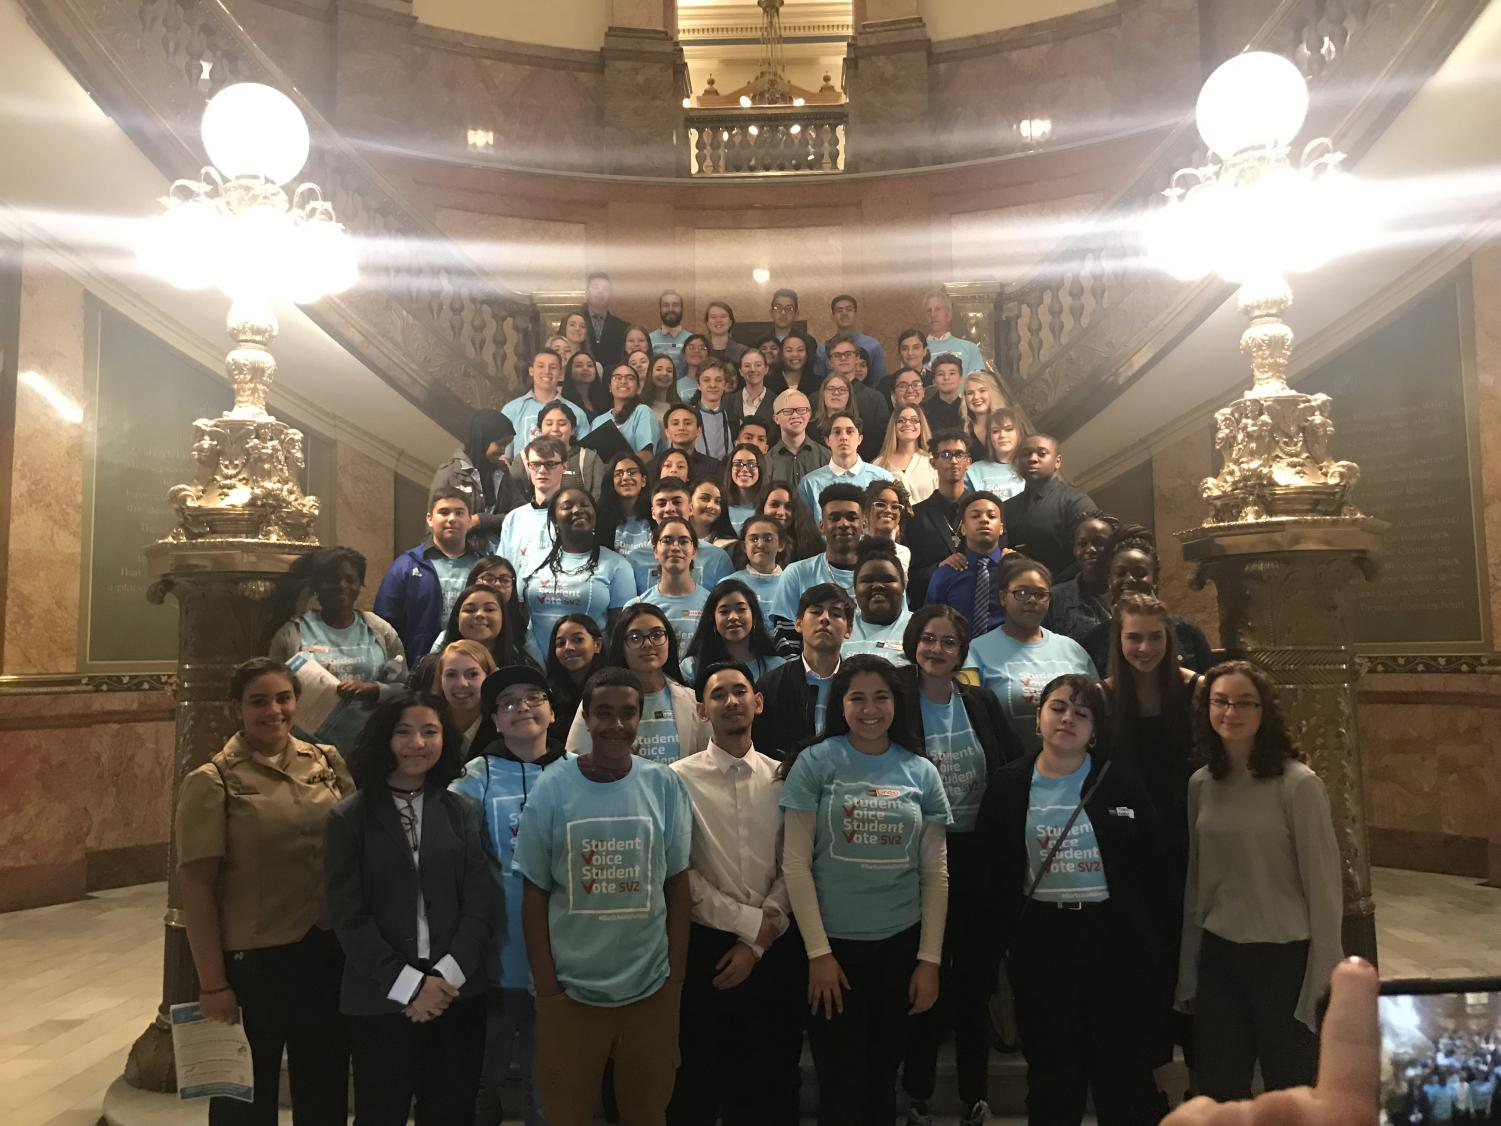 CYC students from around the state gathered at Lobby Day at the state capital last spring.